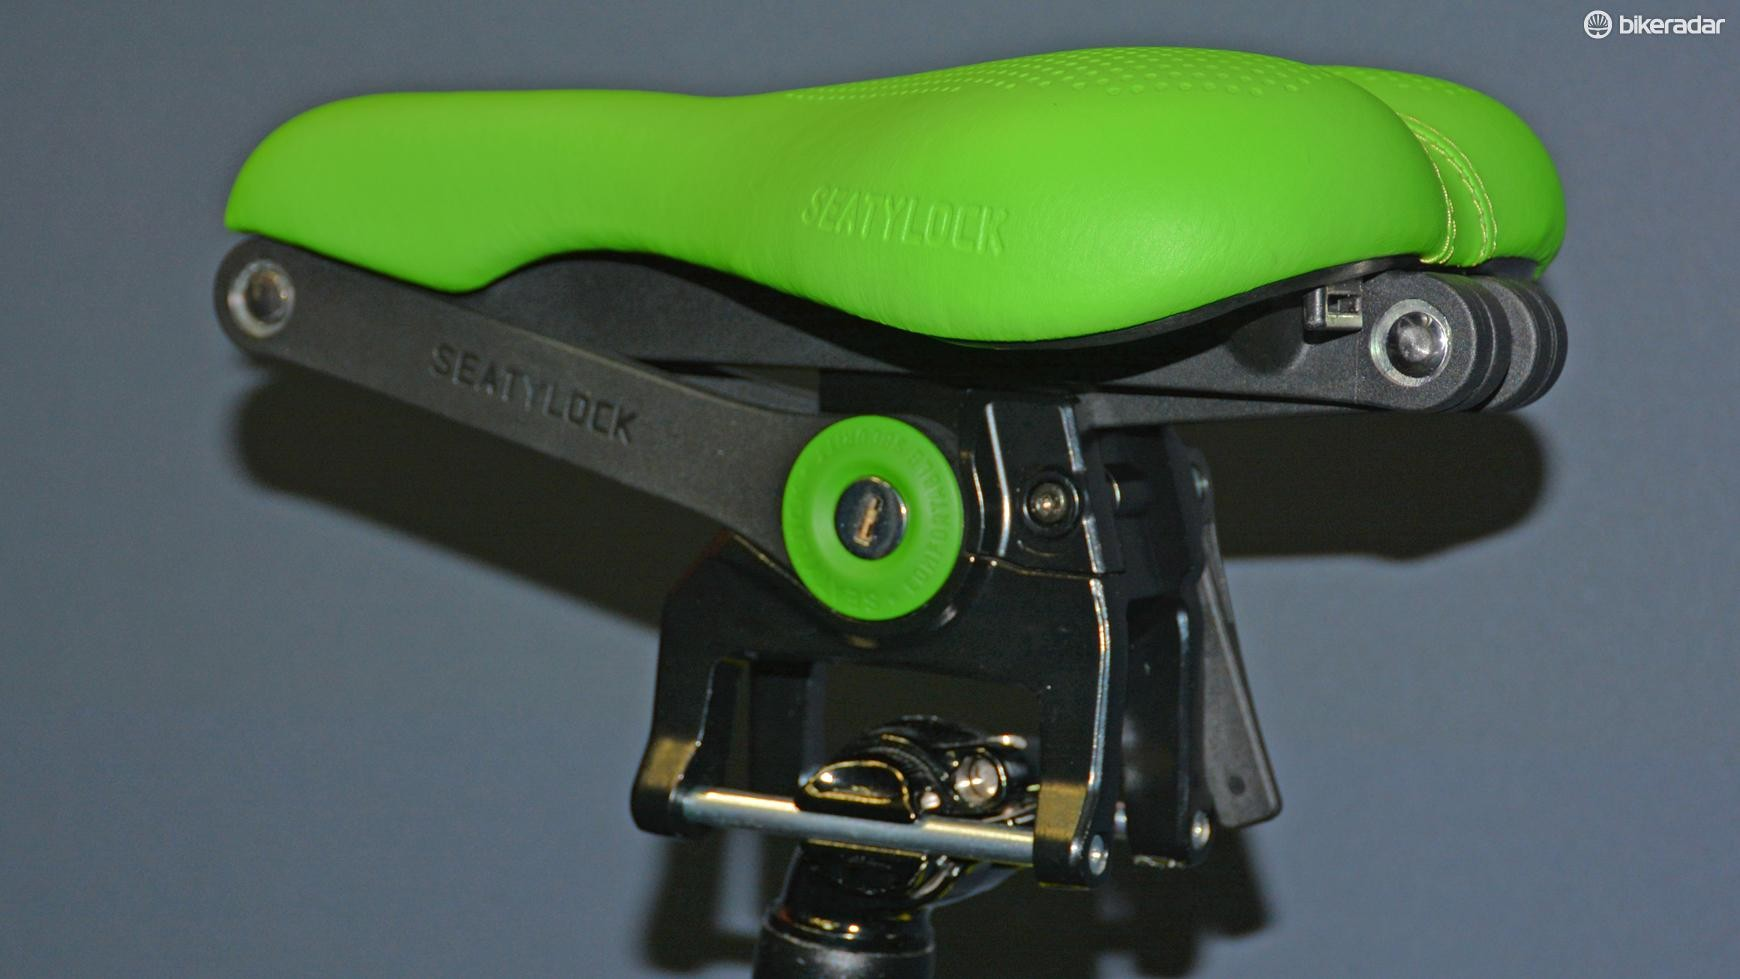 Seatylock is what it sounds like, a bike seat and a lock